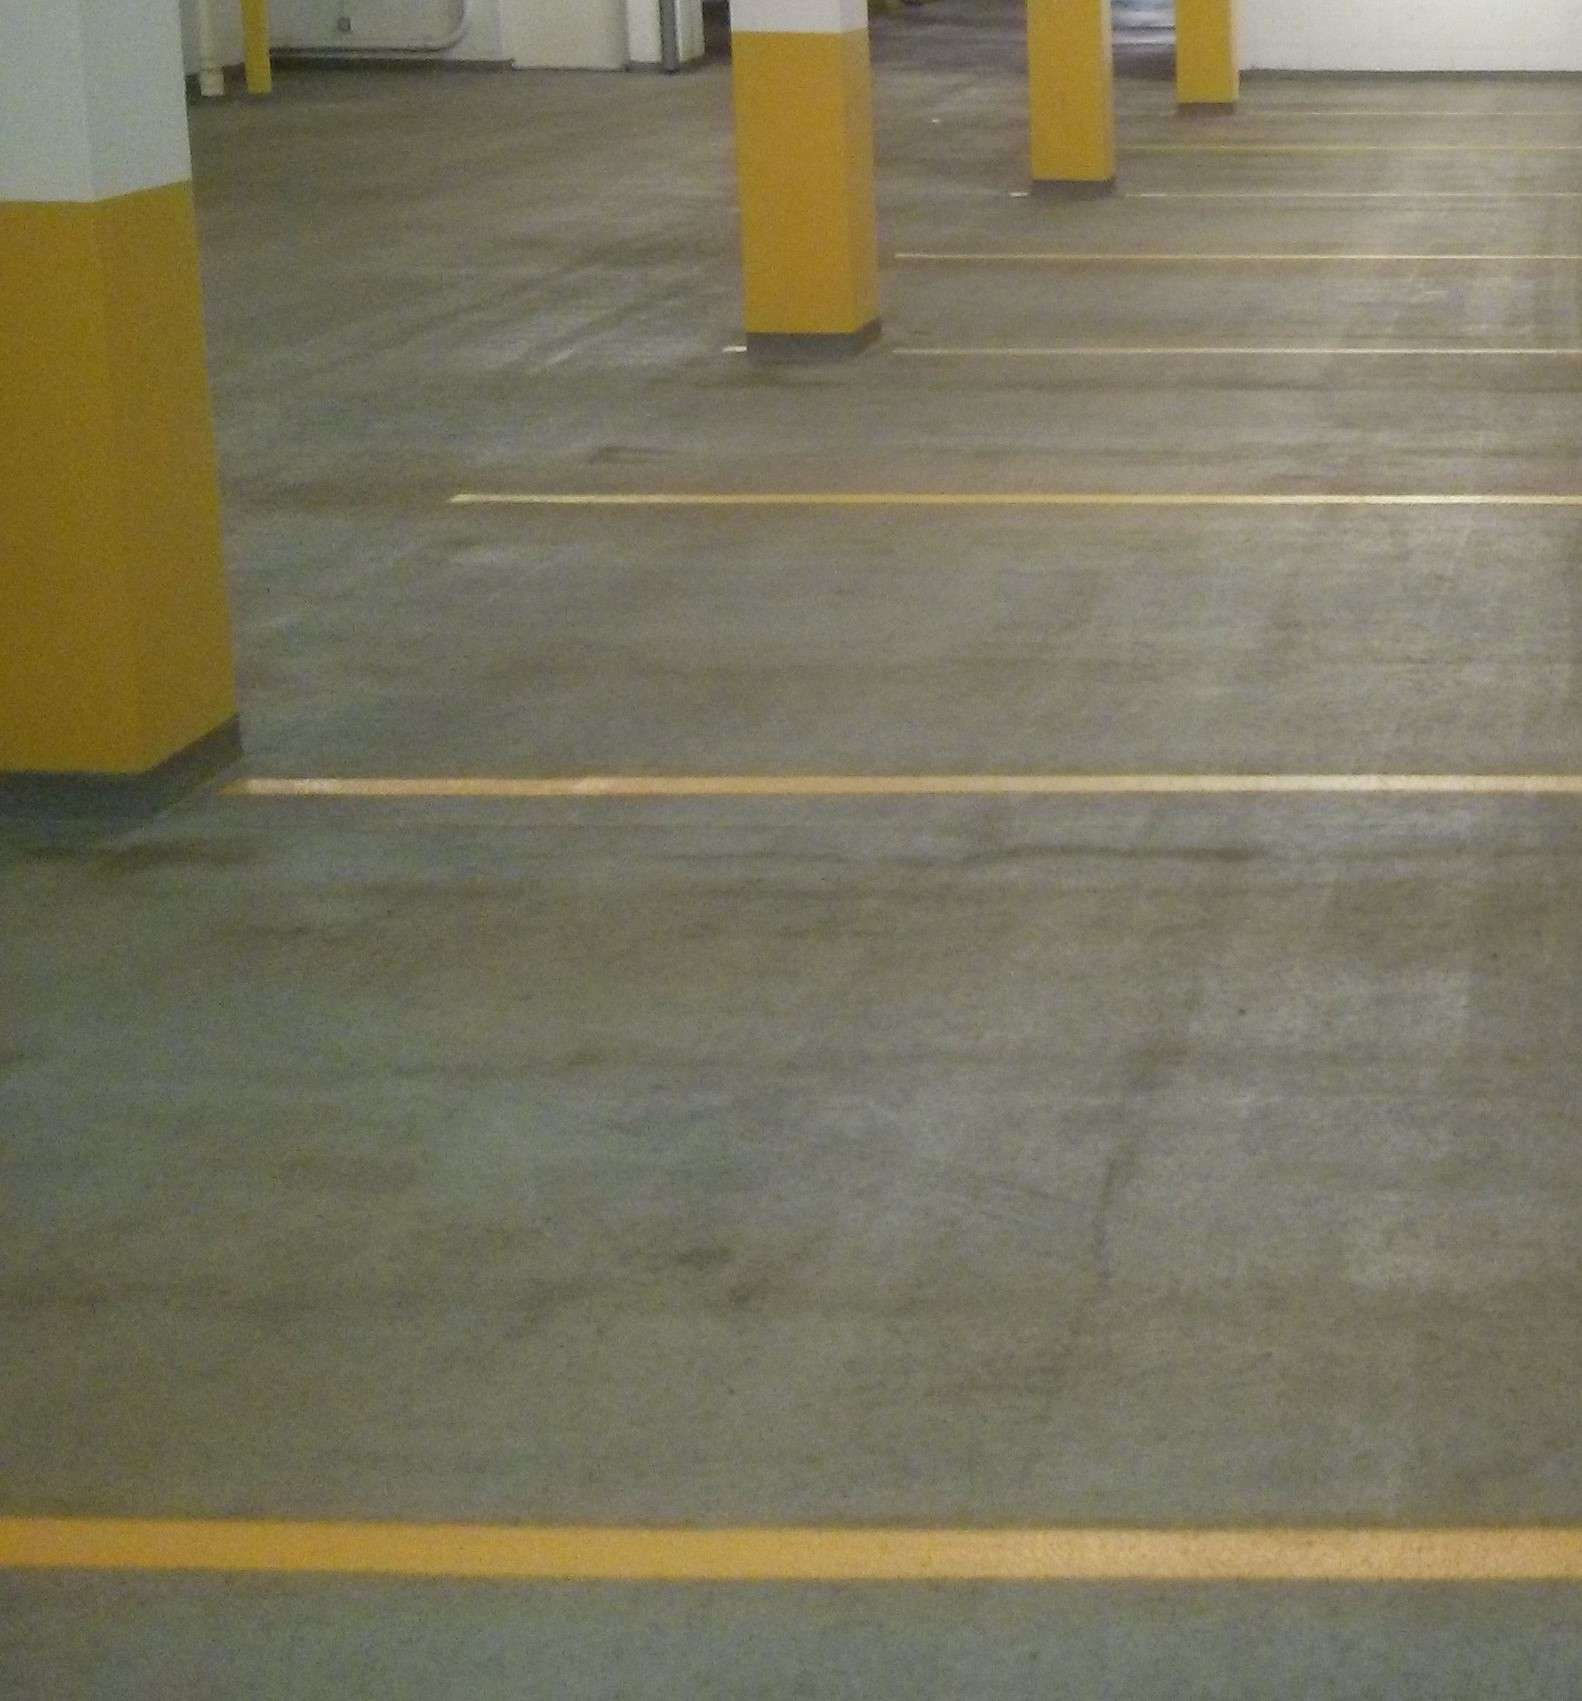 Parking Garage Floor Cleaning And Re Striping Job In Minneapolis